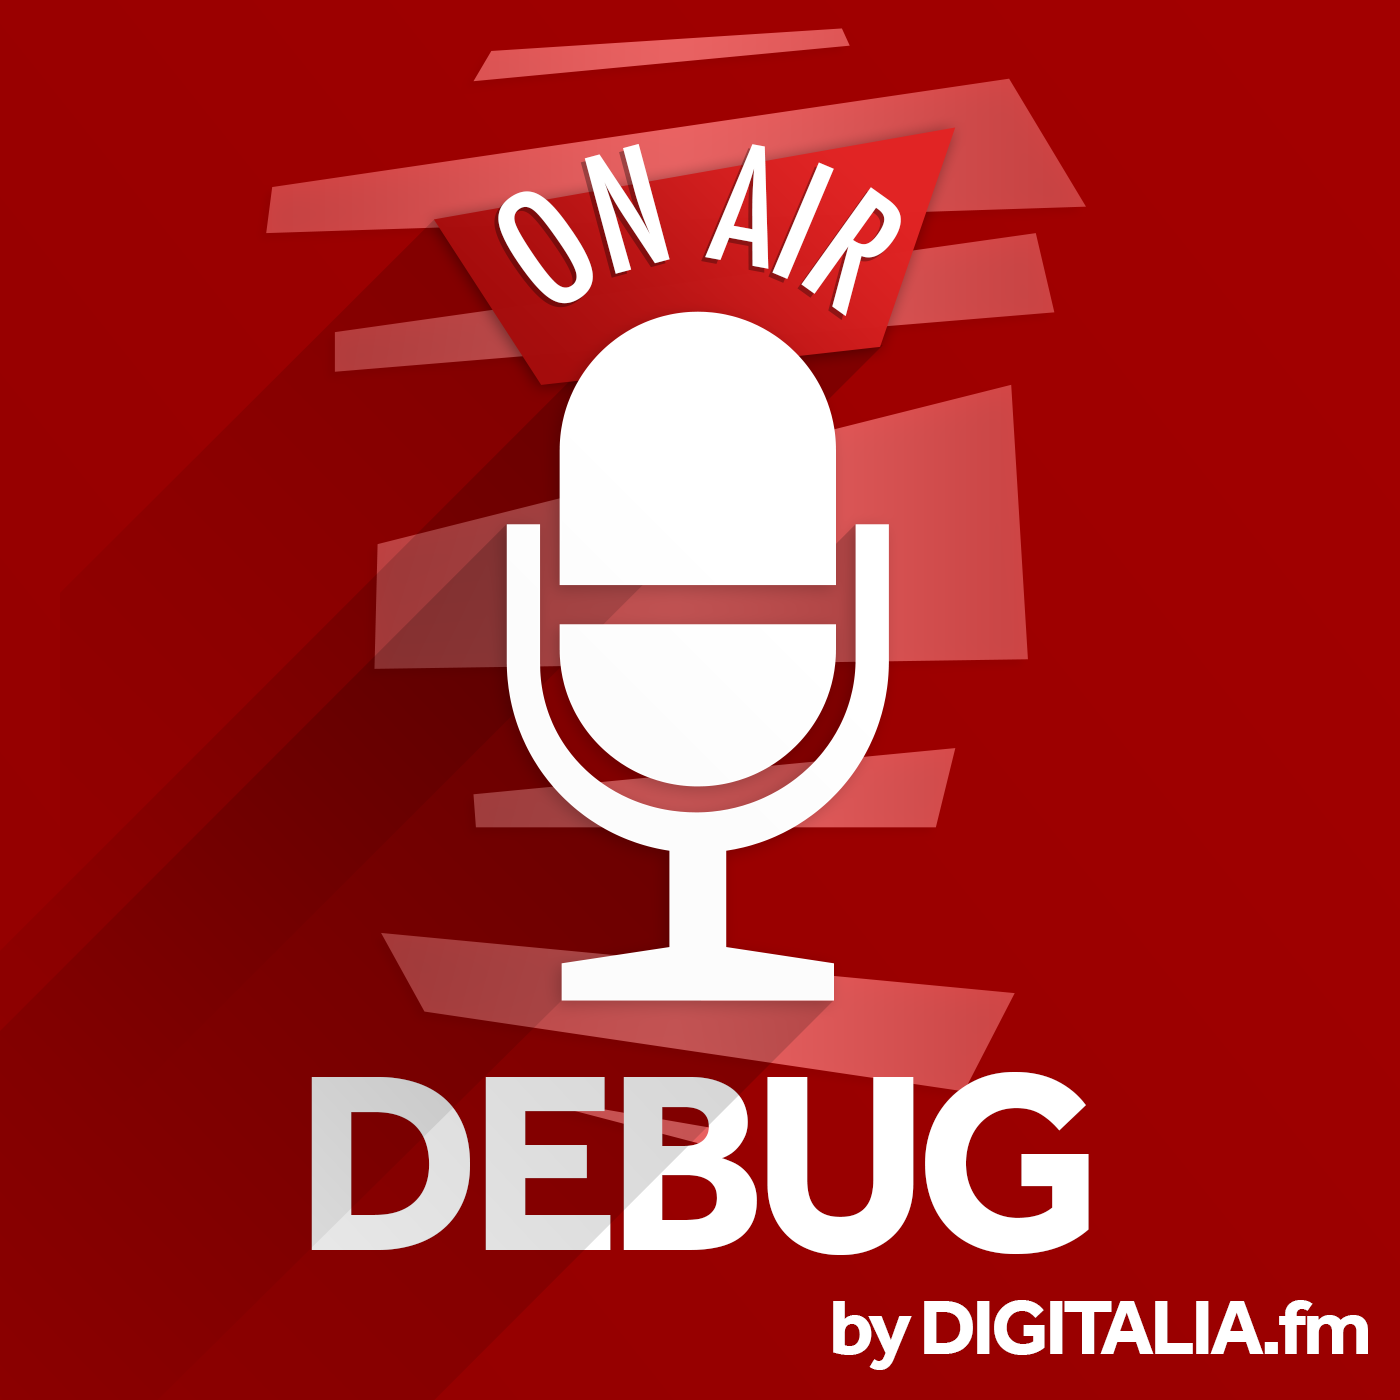 Debug by Digitalia